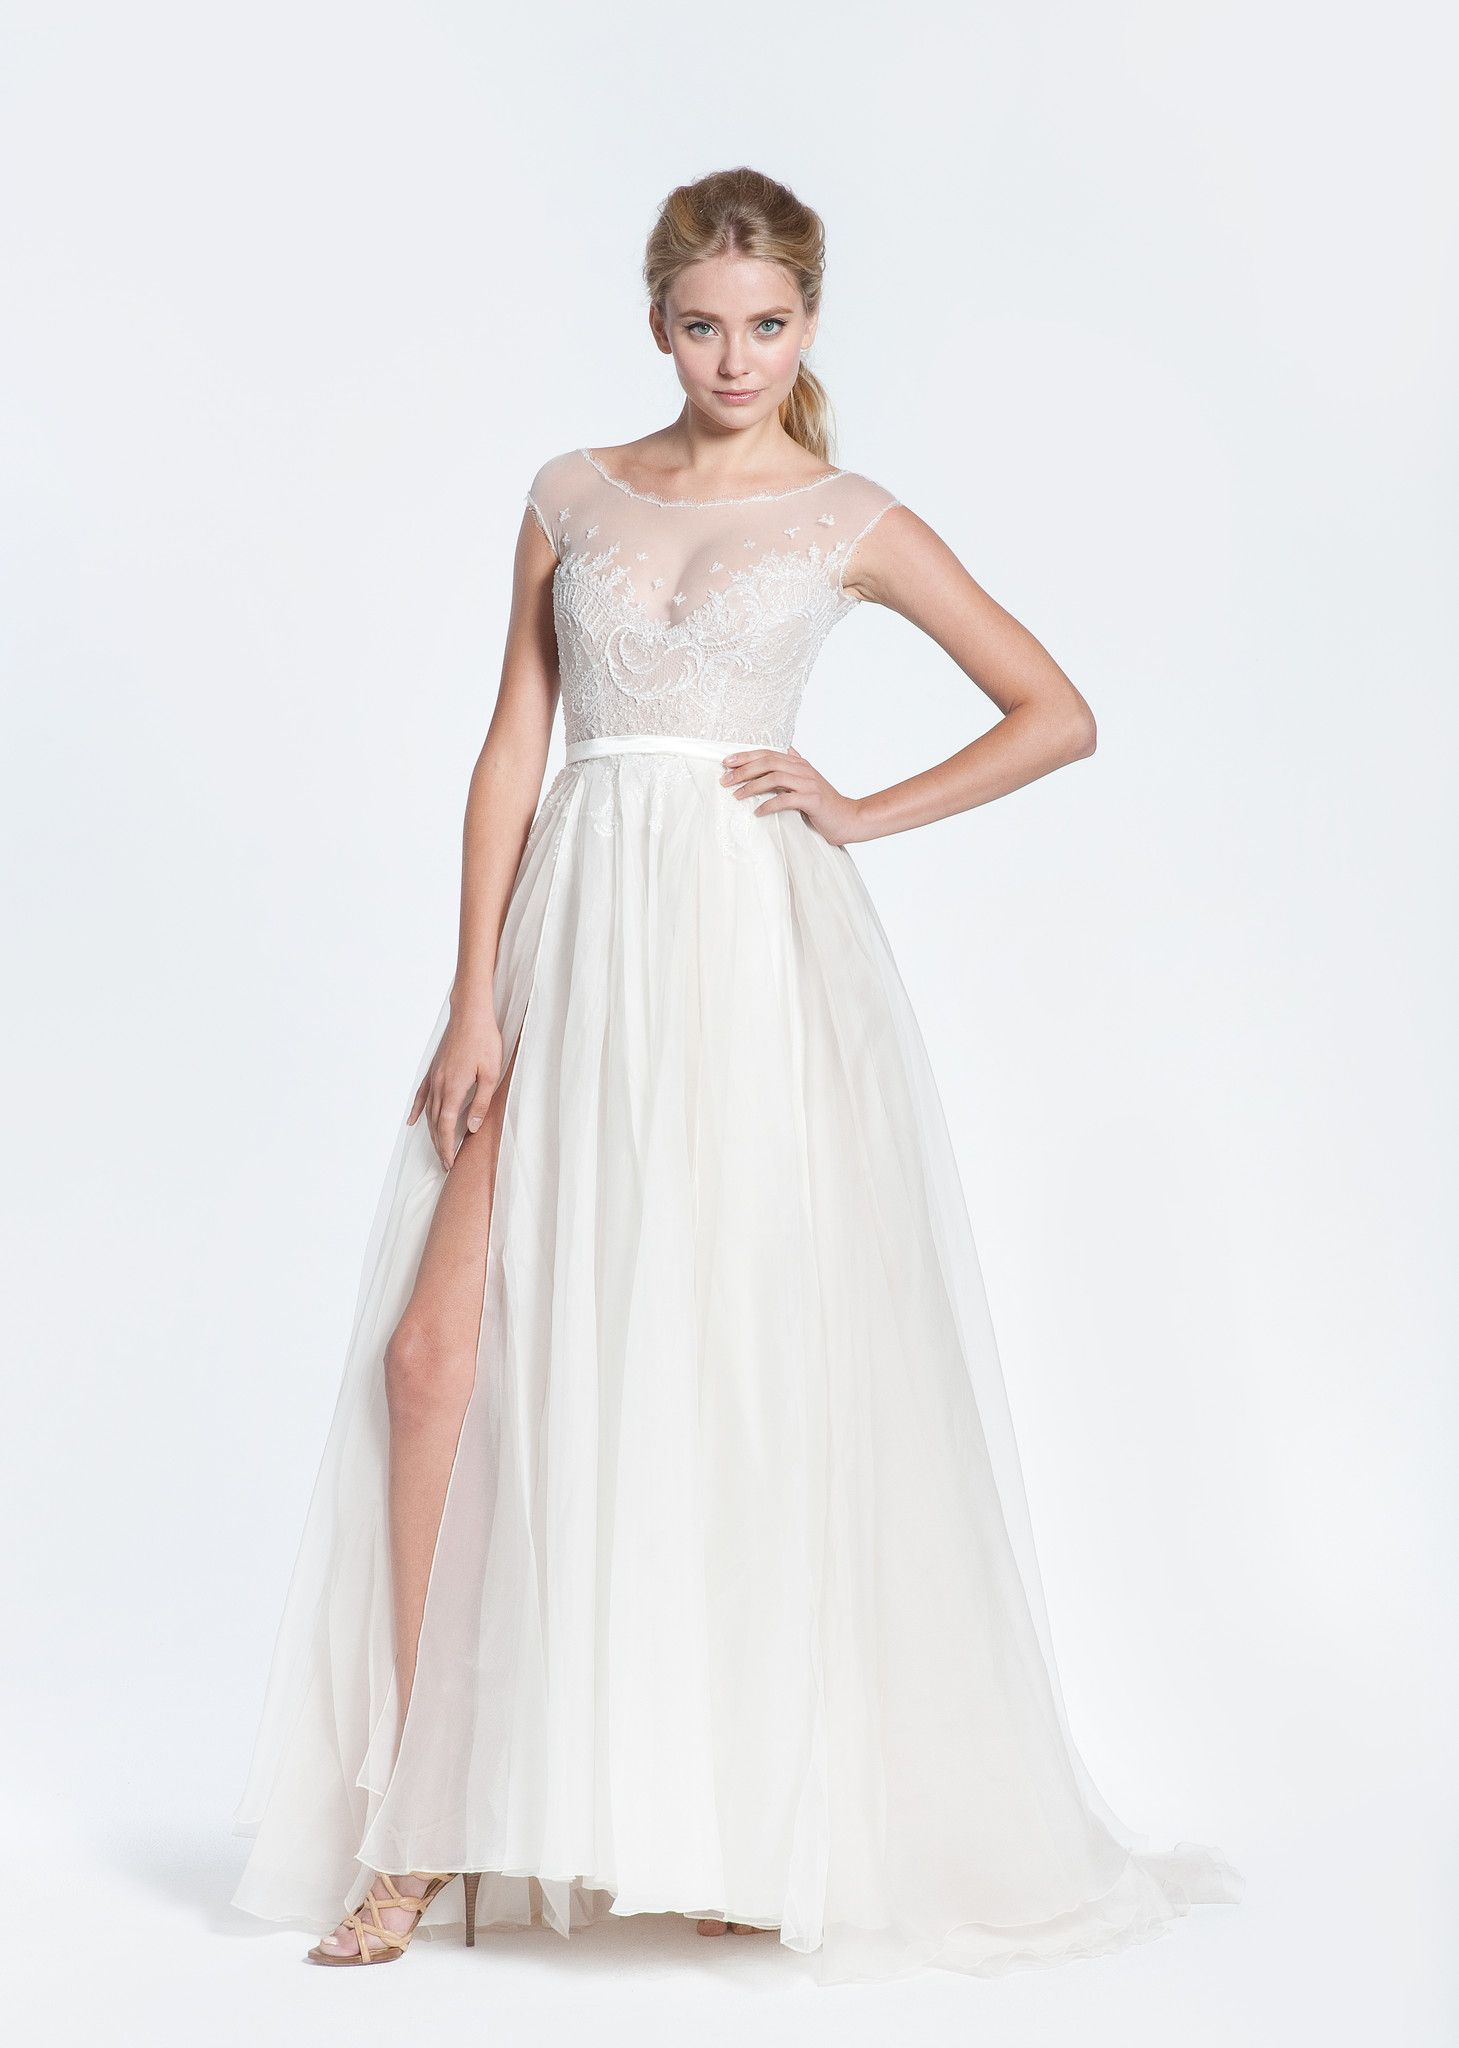 Paolo Sebastian Swan Lake Wedding Dress with Nude Bustier | See more ...